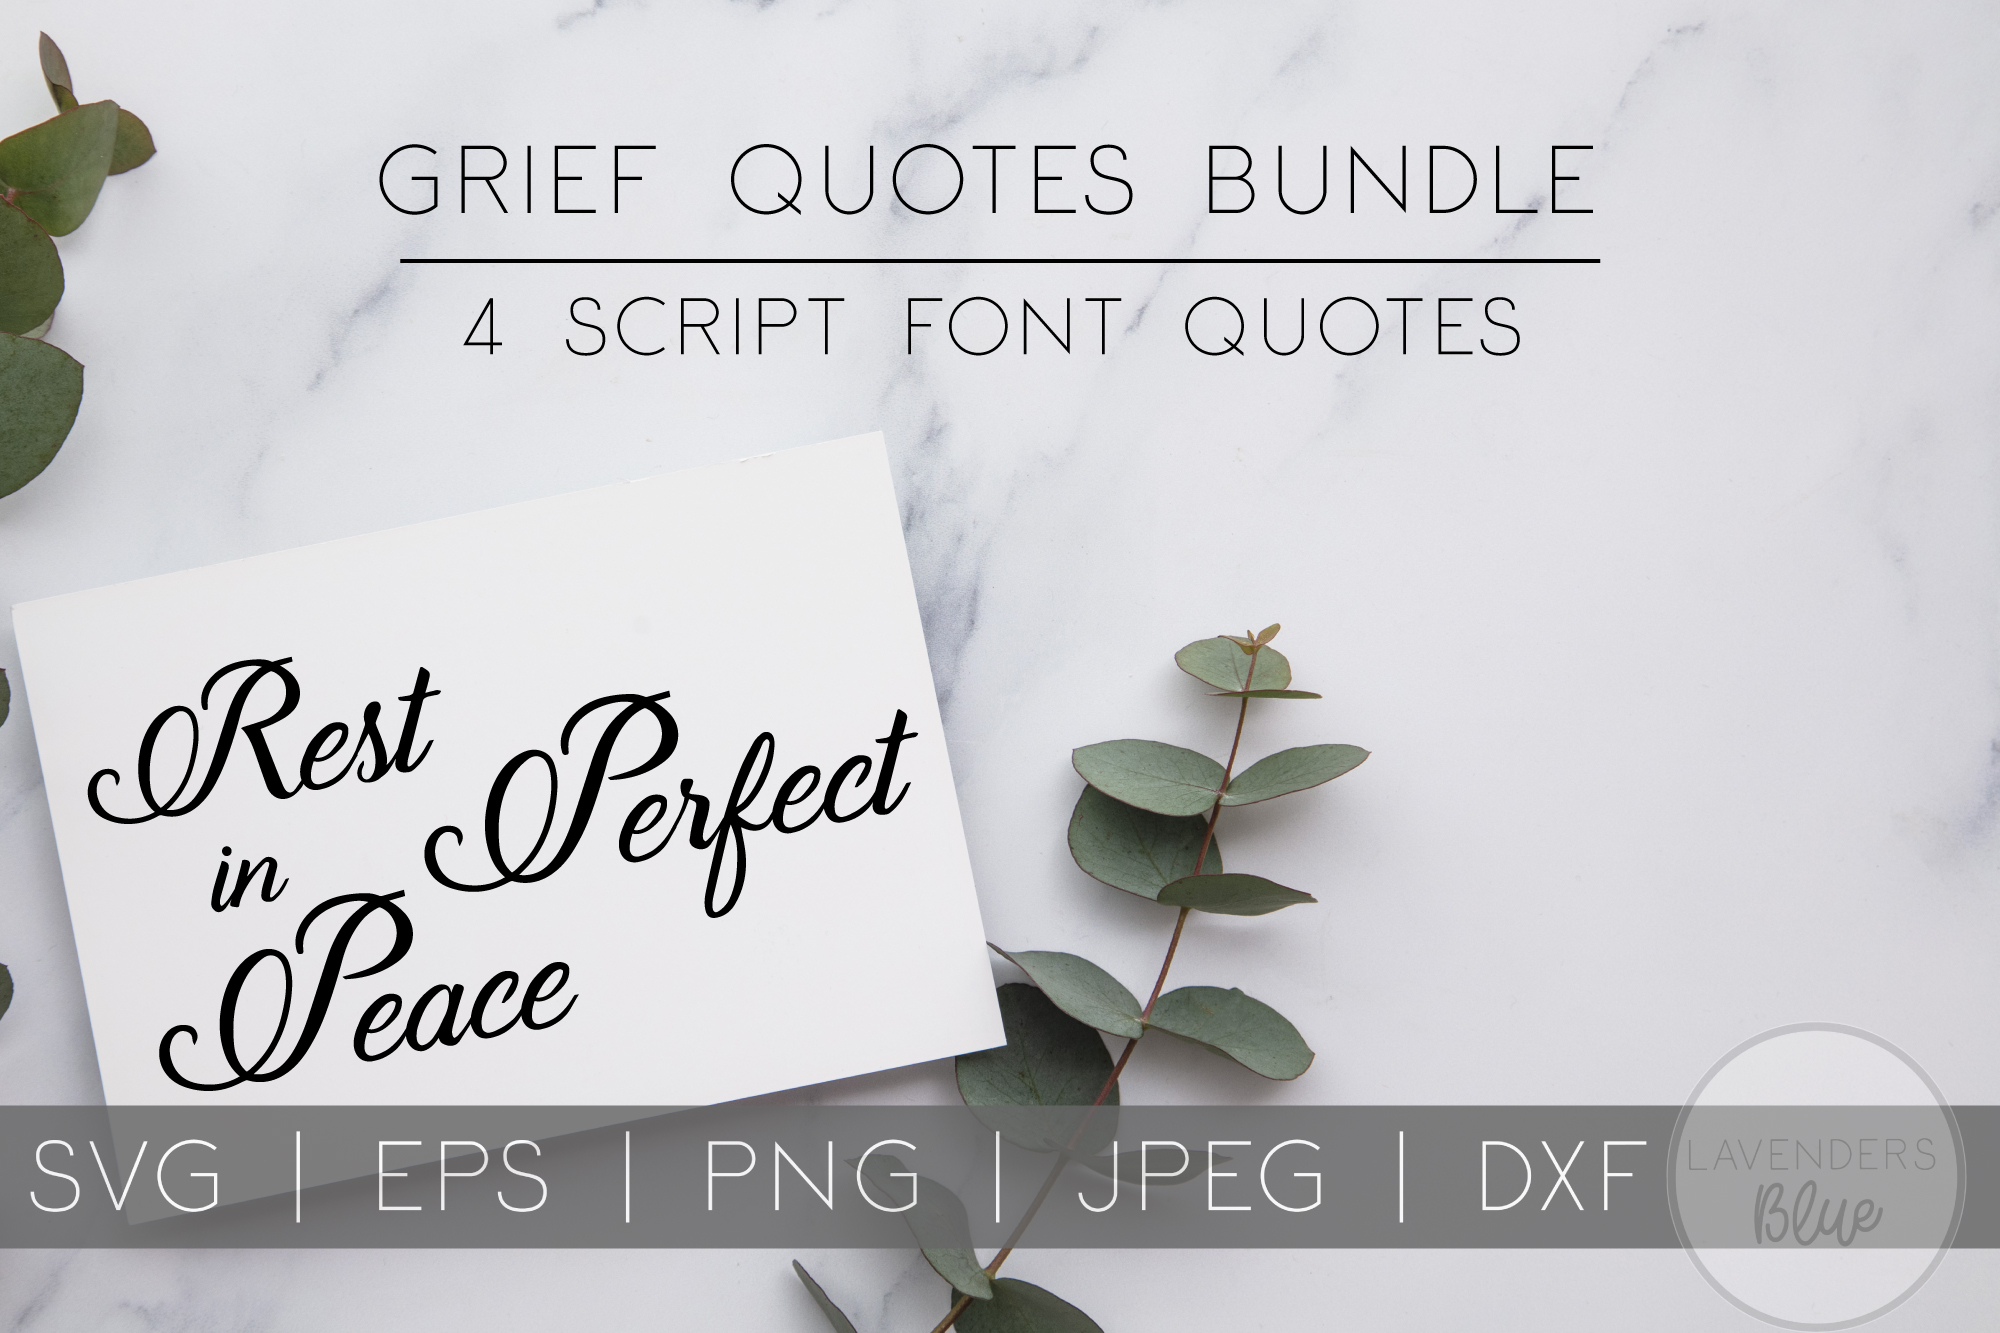 Rest in Peace SVG Bundle | EPS | PNG | DXF example image 1